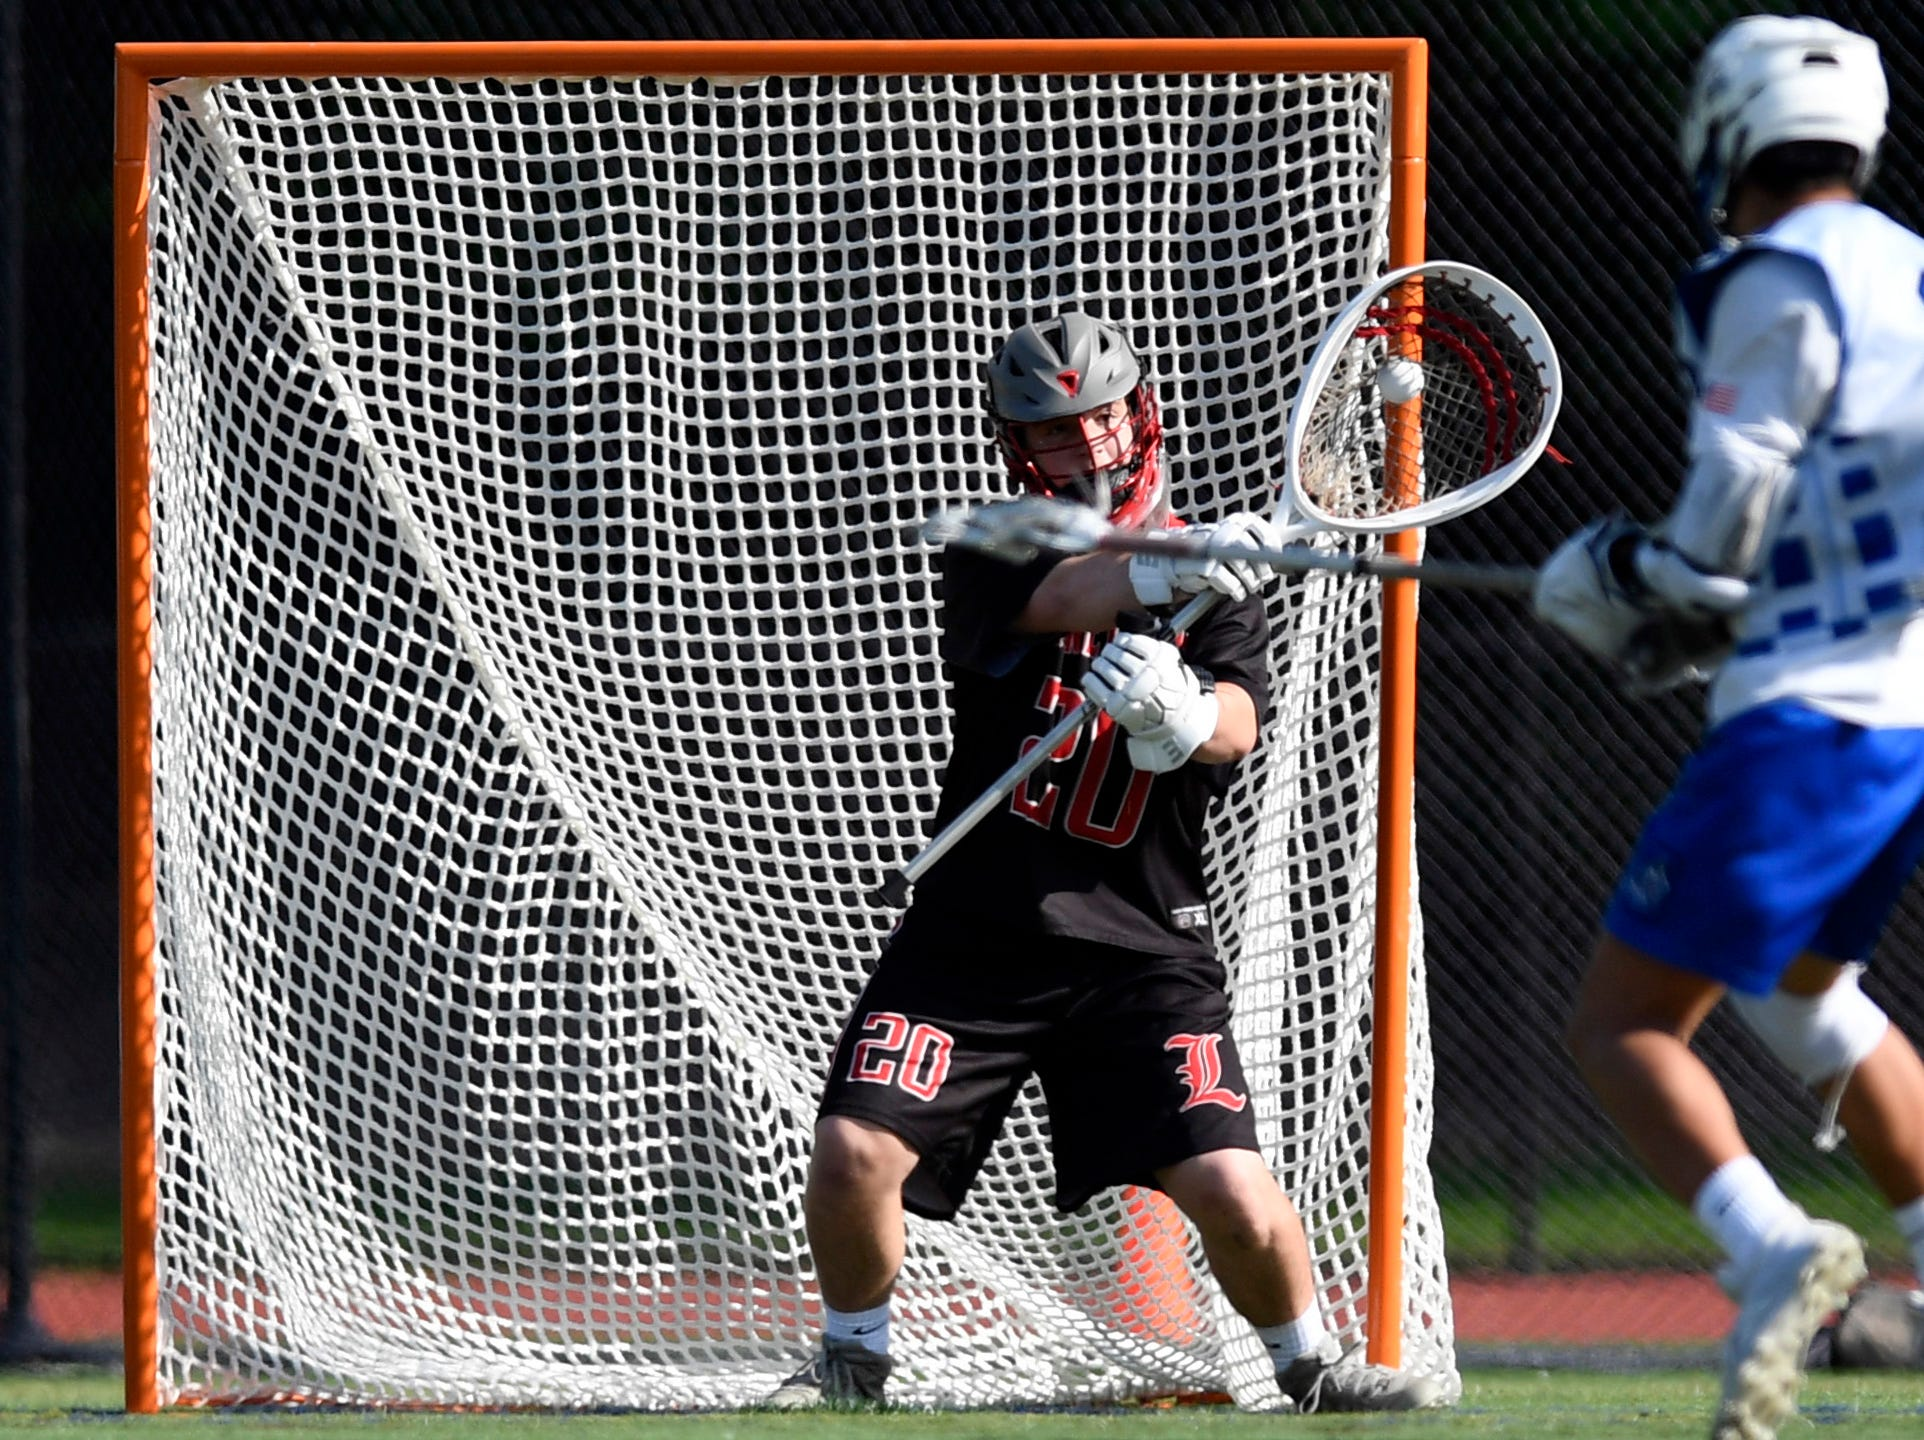 Lakeland goalie Matt Focarino makes a save against Demarest in the first half. Northern Valley Demarest defeated Lakeland 6-3 in the first round of the North Group 2 boys lacrosse tournament on Wednesday, May 15, 2019 in Demarest, NJ.